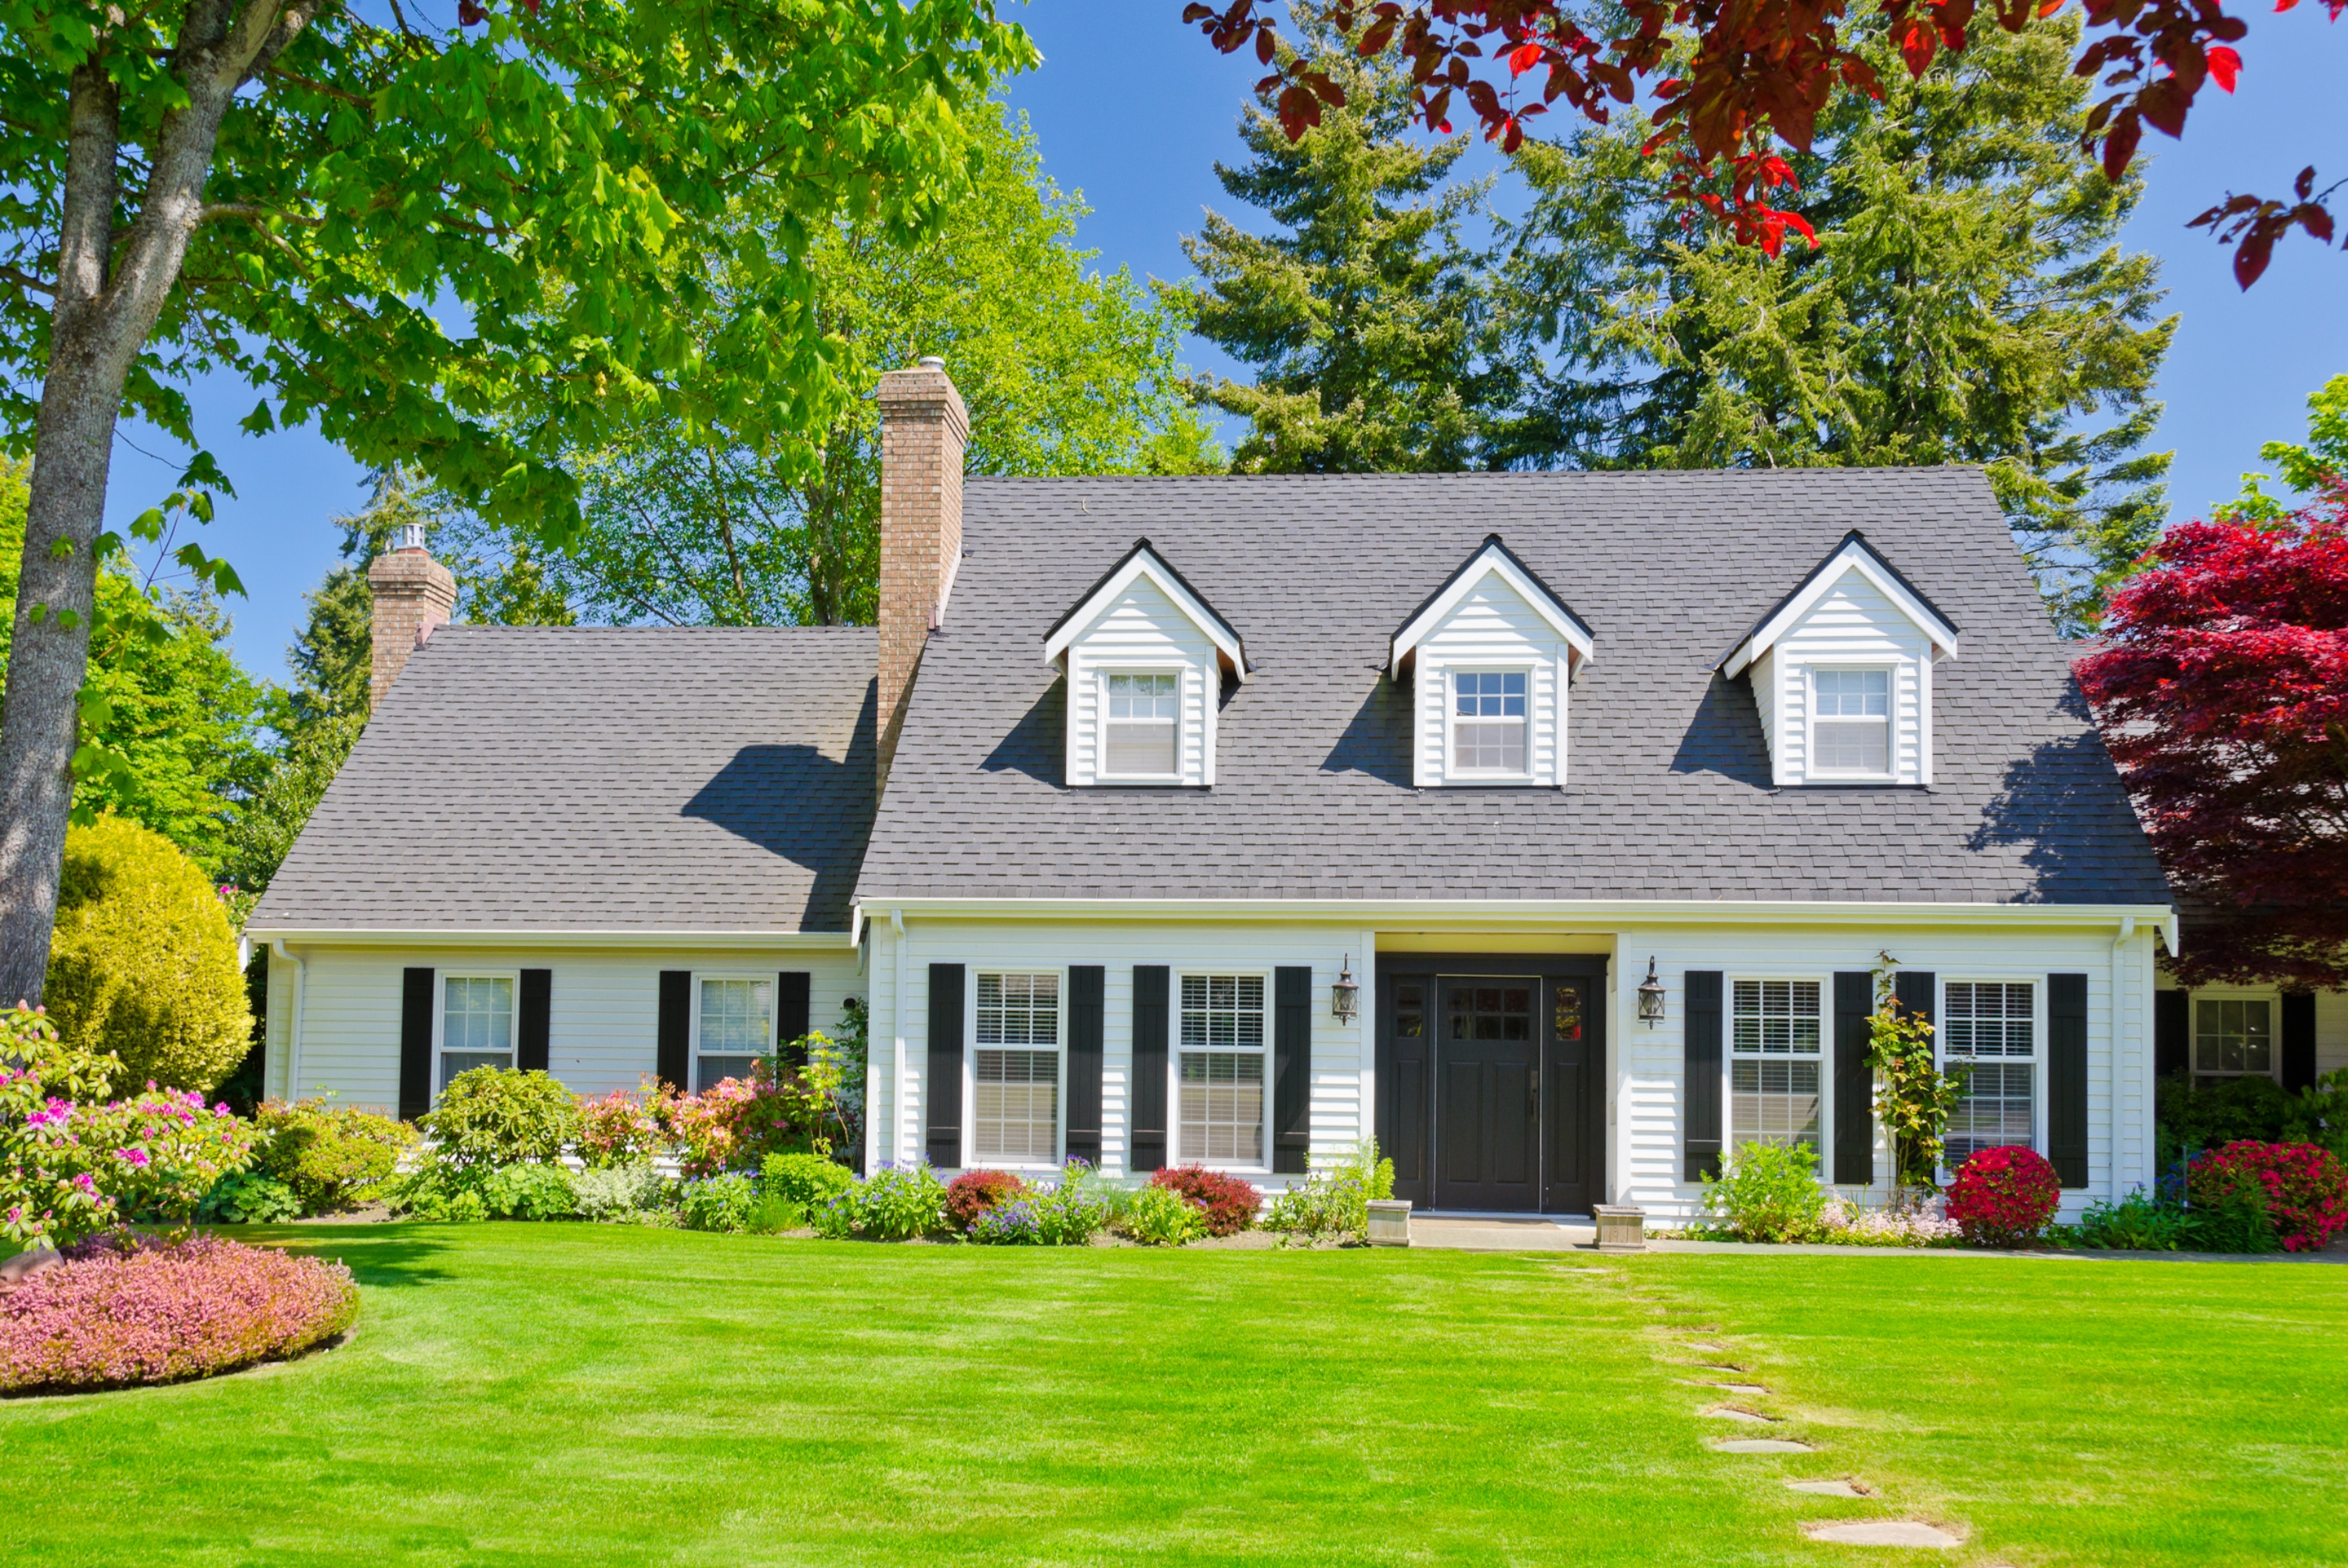 Renting vs. Buying a House - How to Make a Decision, Pros & Cons